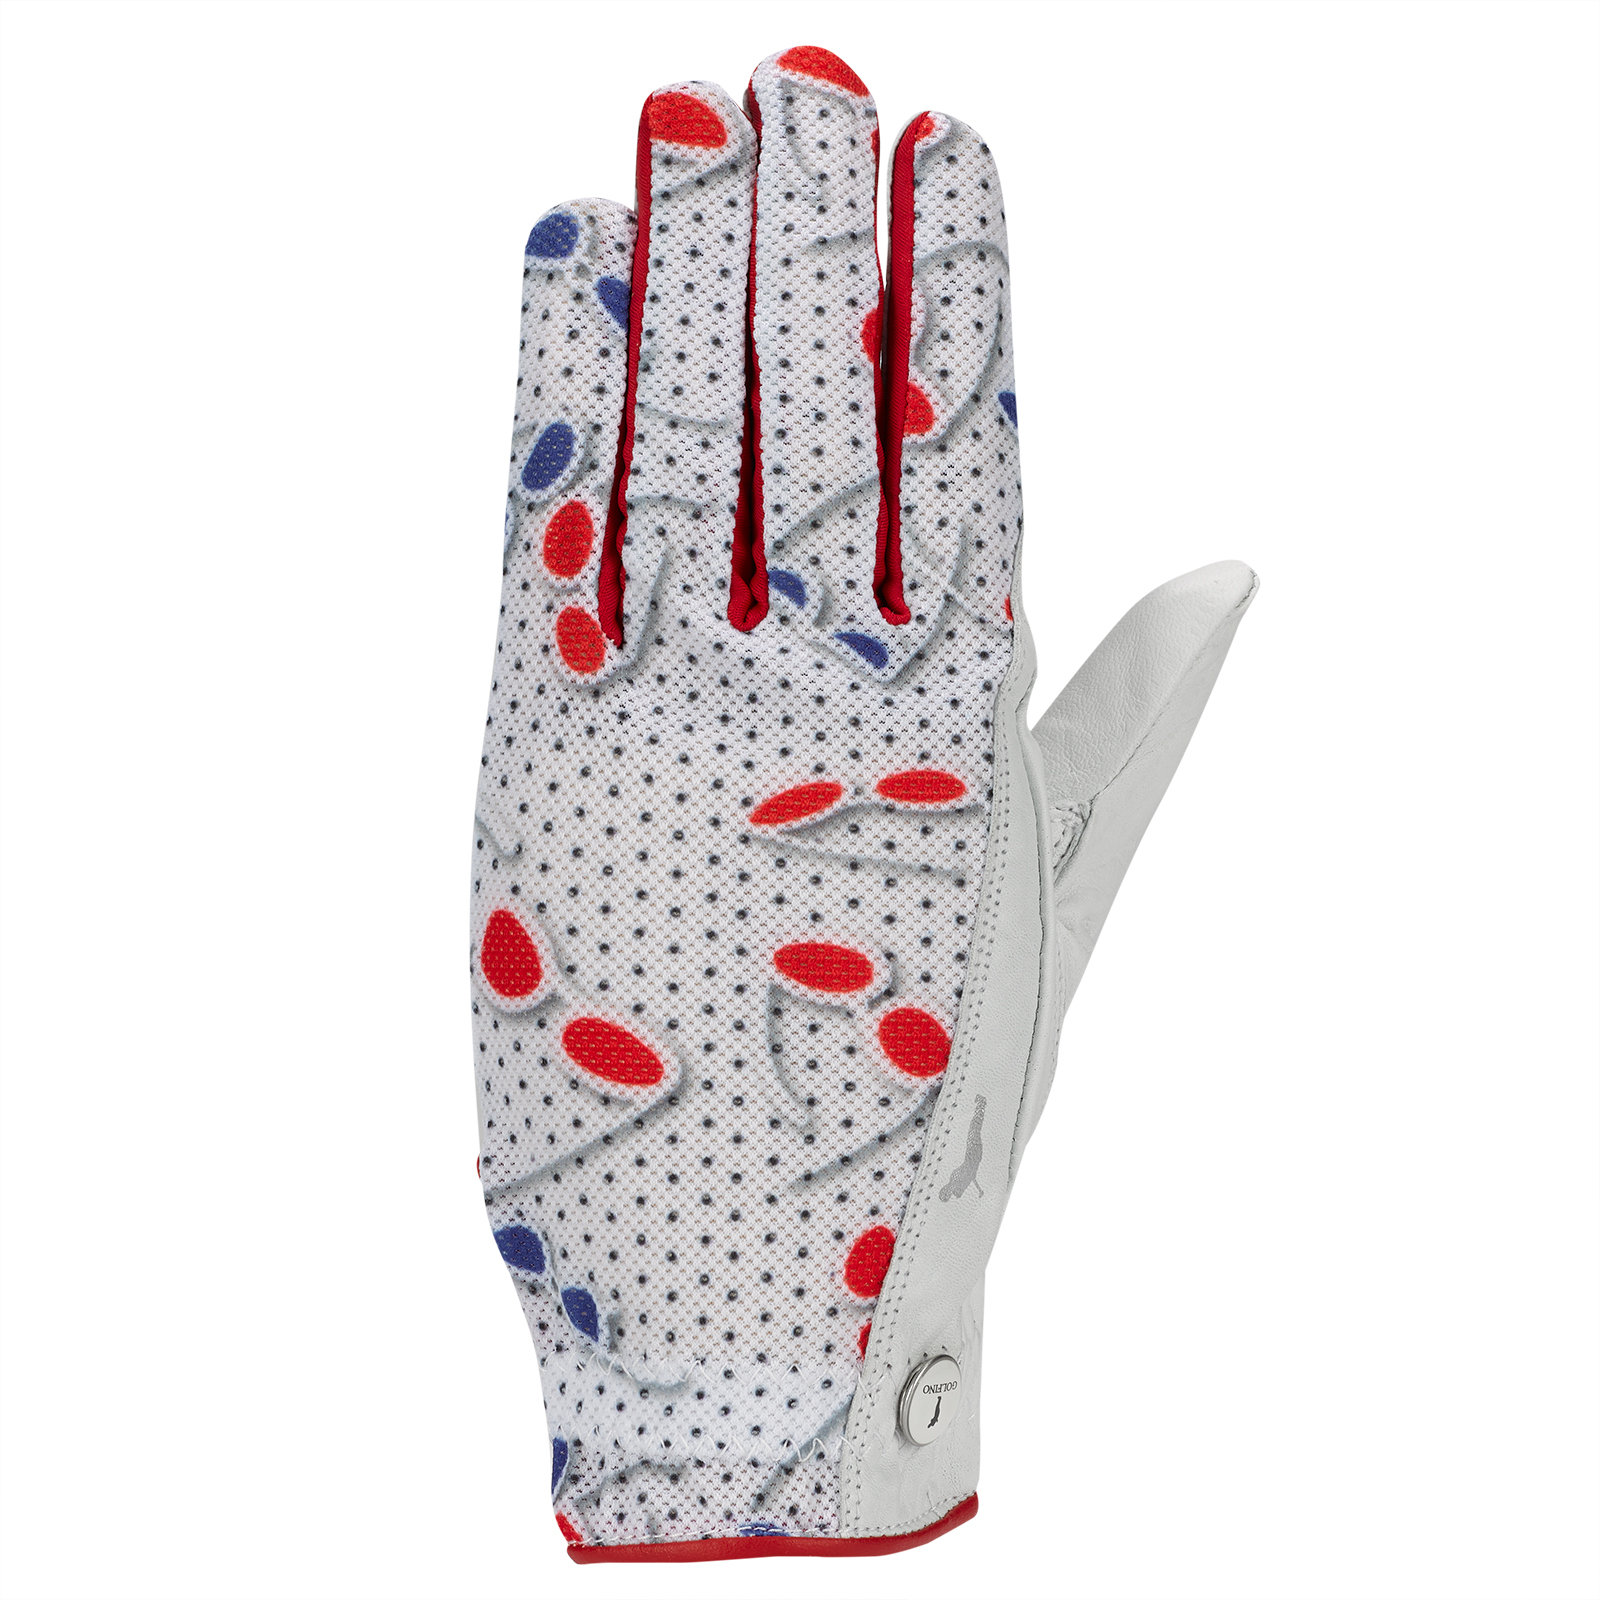 Ladies' left golf glove in nappa leather with fashionable print